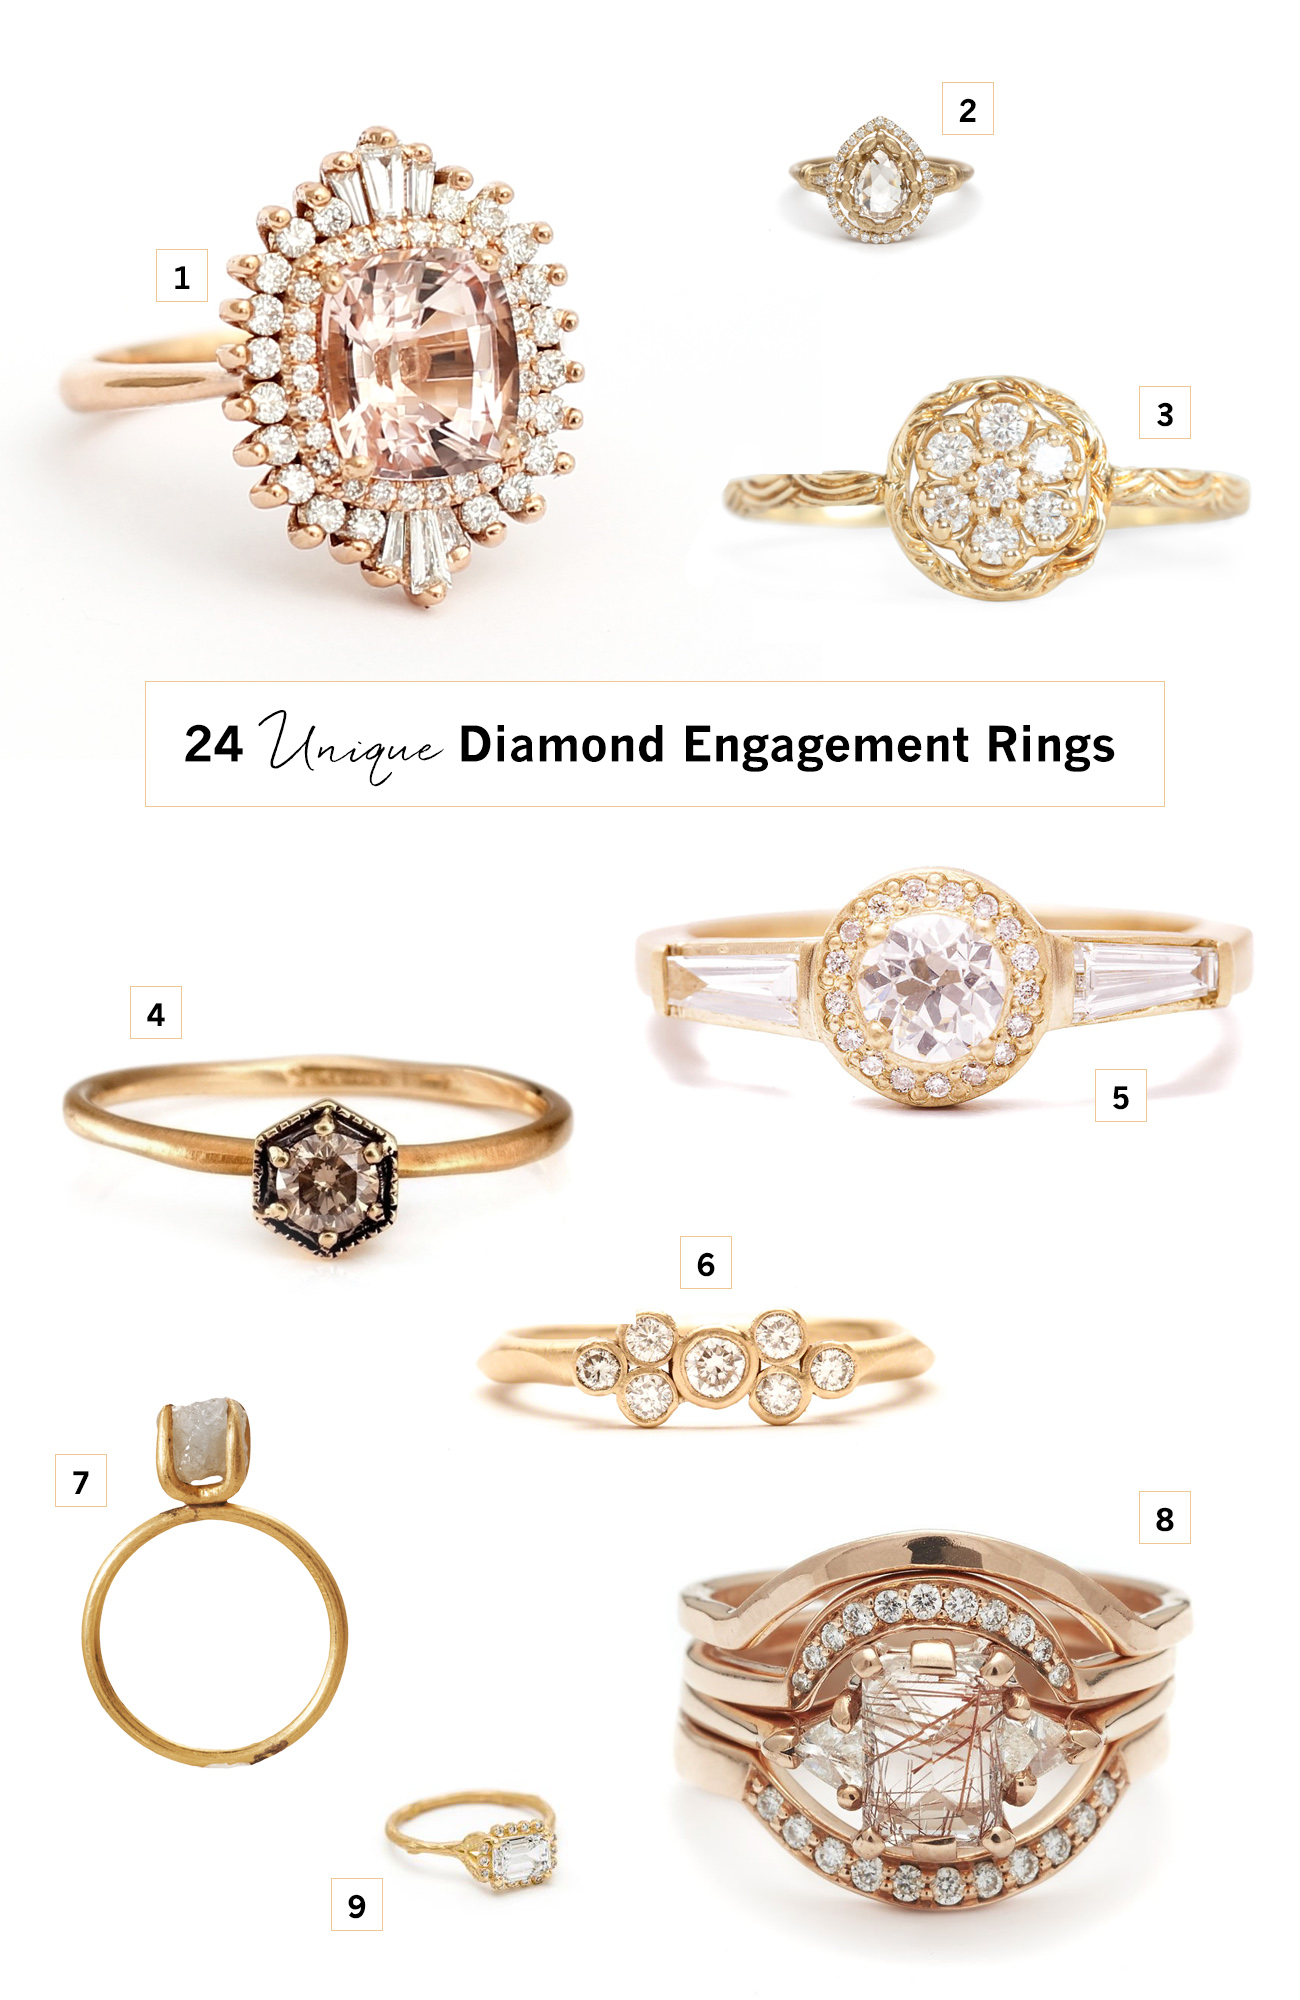 24 Unique Diamond Engagement Rings